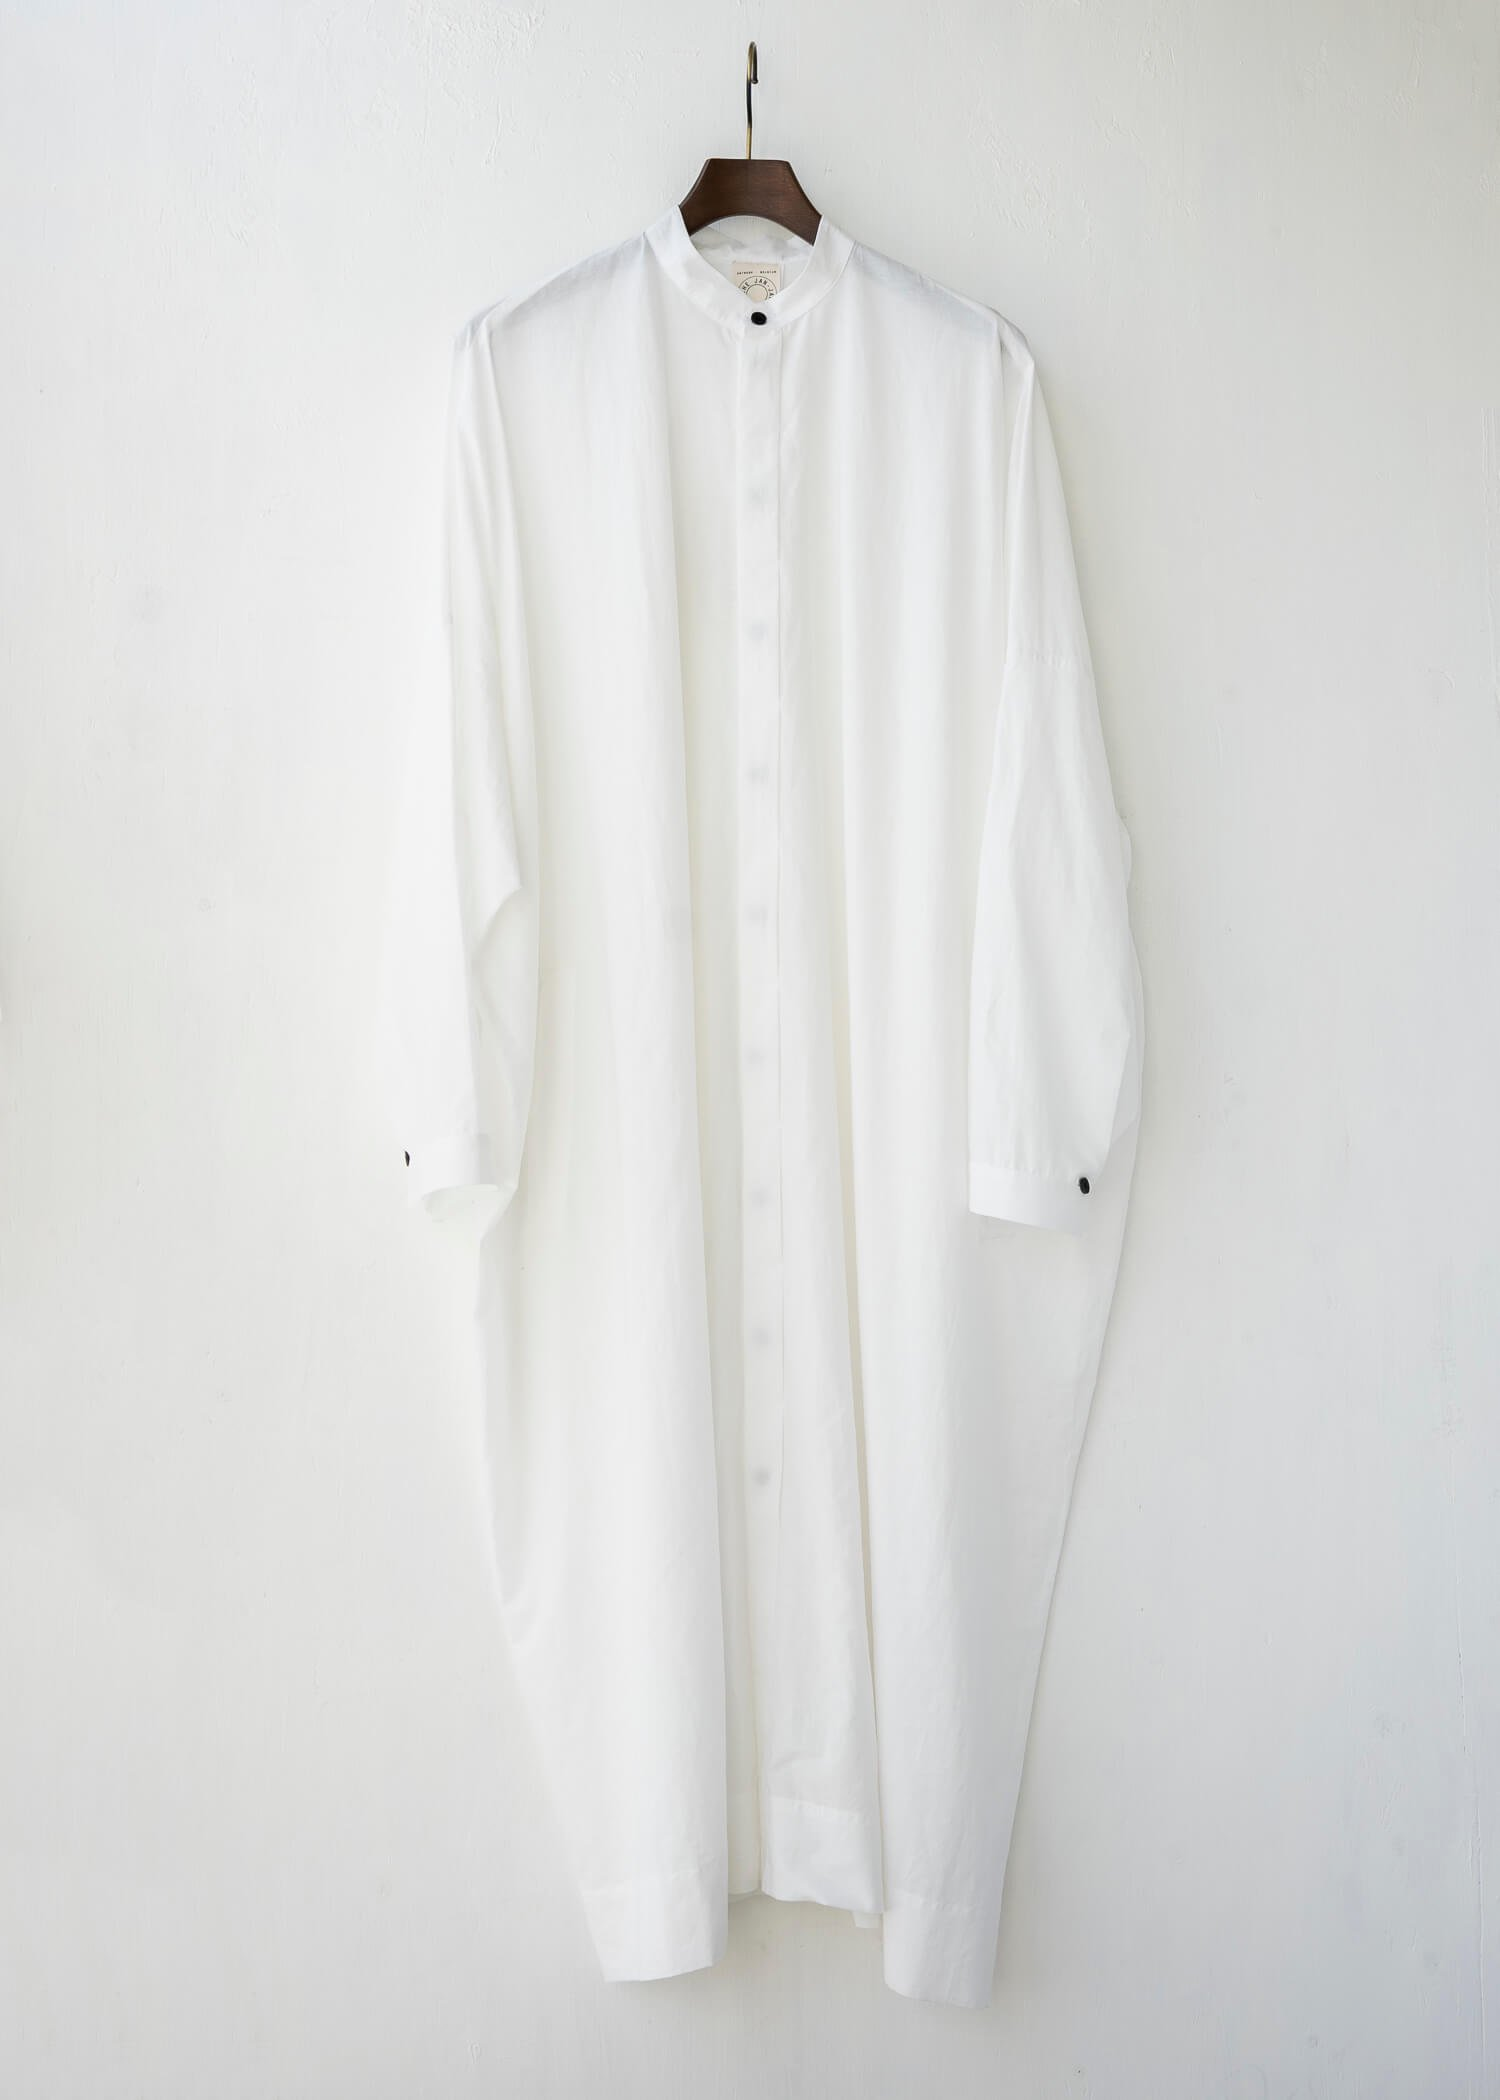 JAN-JAN VAN ESSCHE / SHIRT#78 OVERSIZED LONG SHIRT OFF-WHITE CO/LI TYPEWRITTER